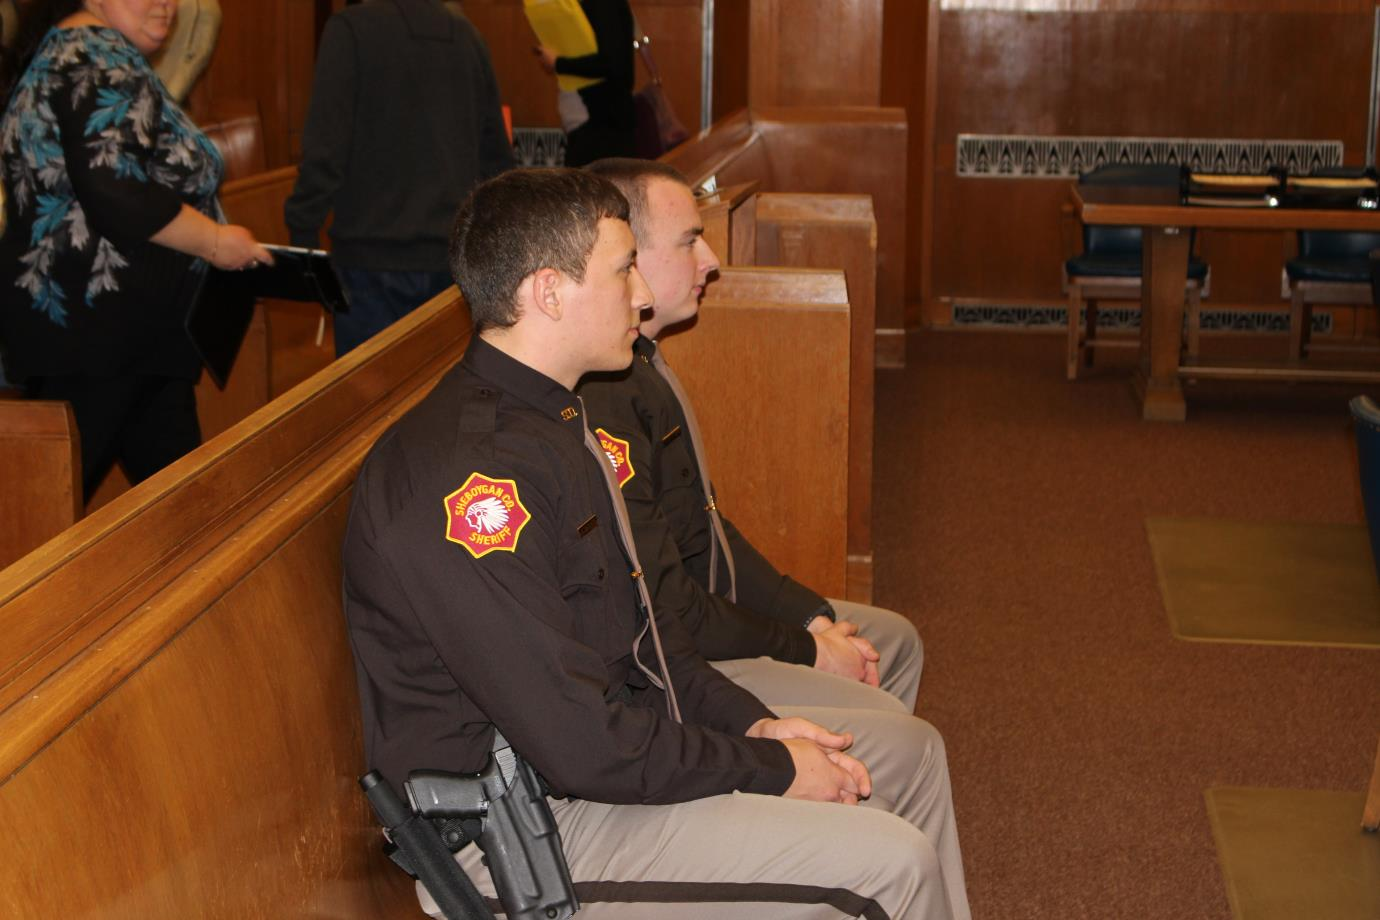 Officers waiting patiently at the front of the courtroom